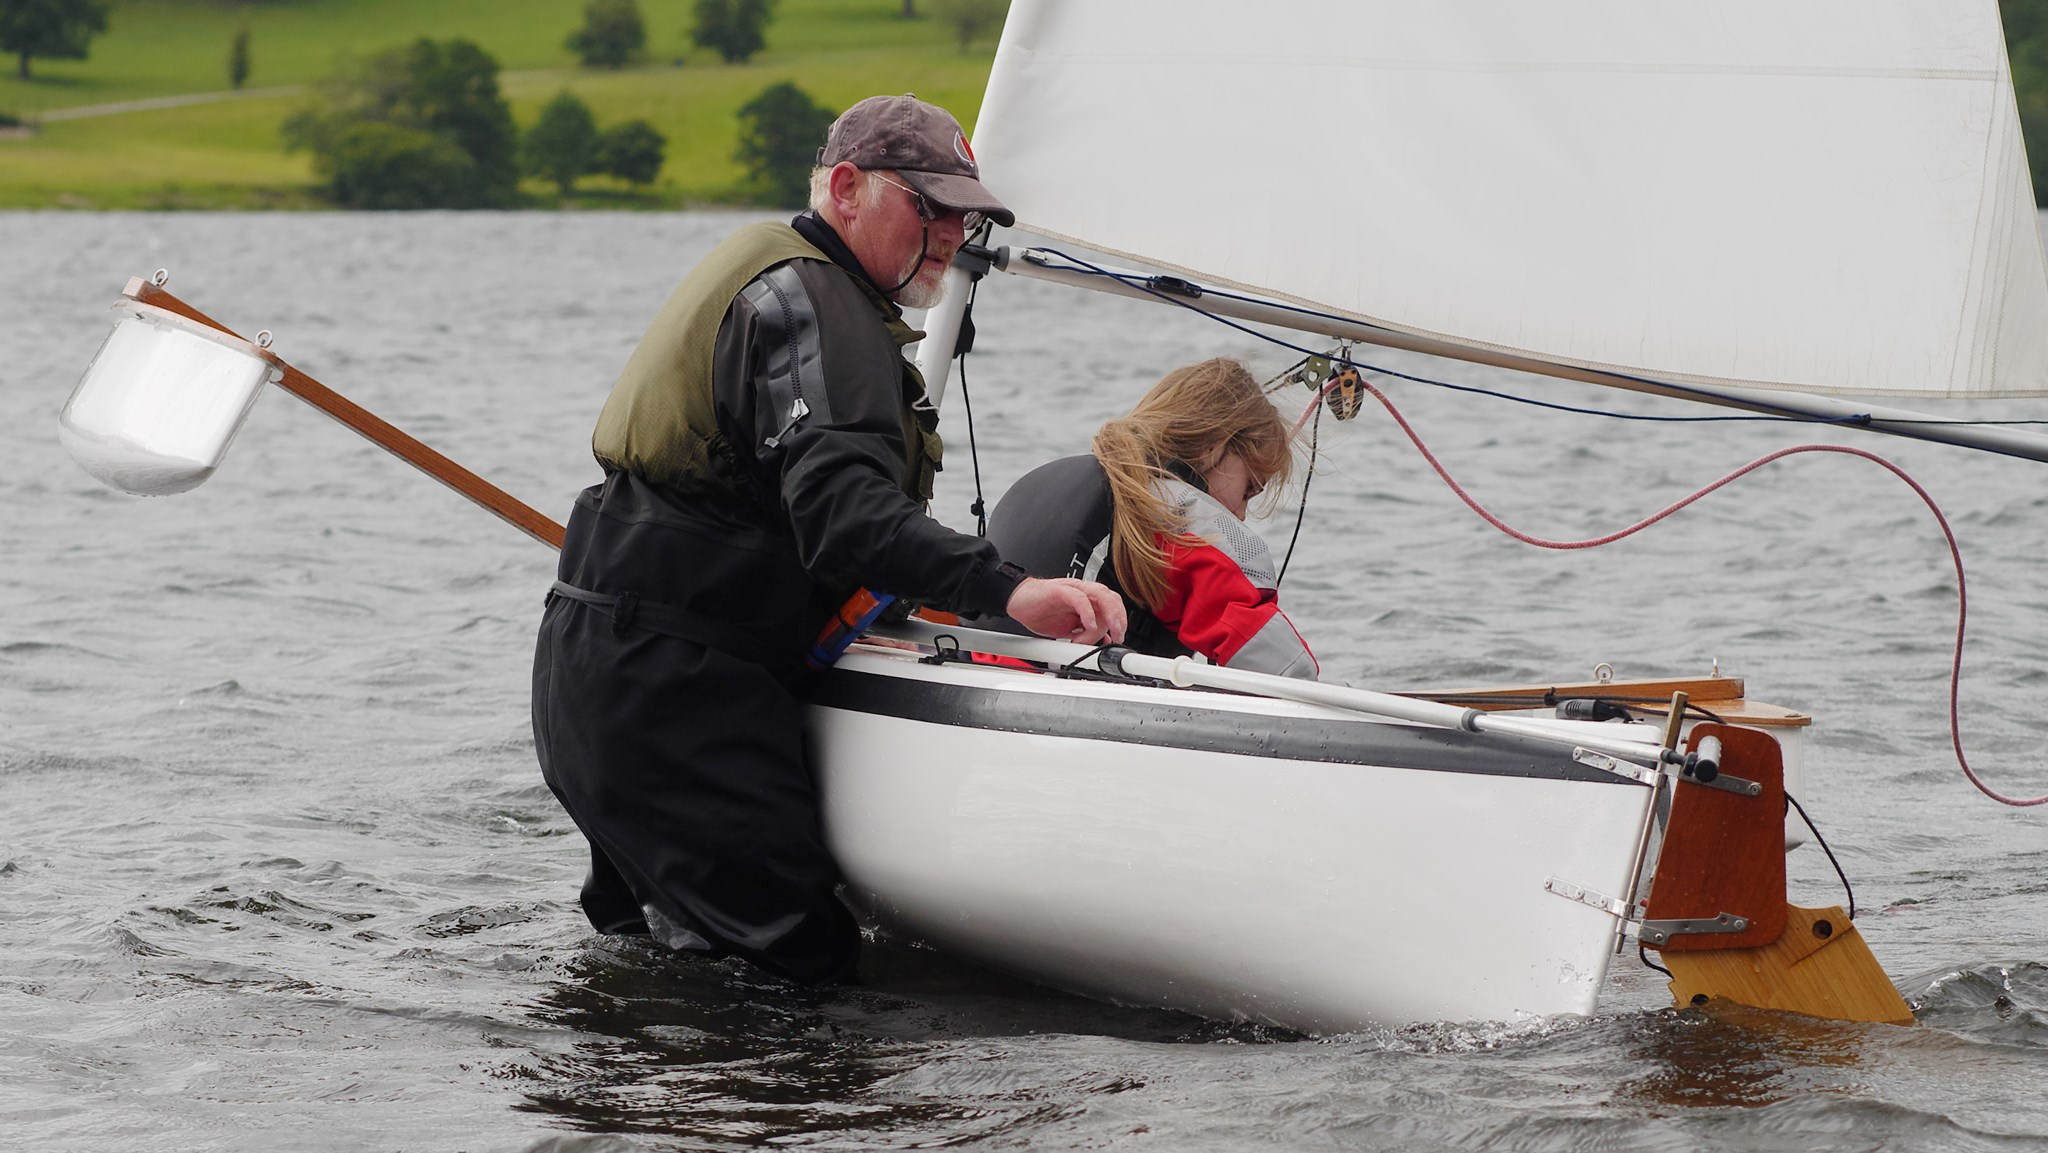 Inspiring the next generation - Ullswater 2015